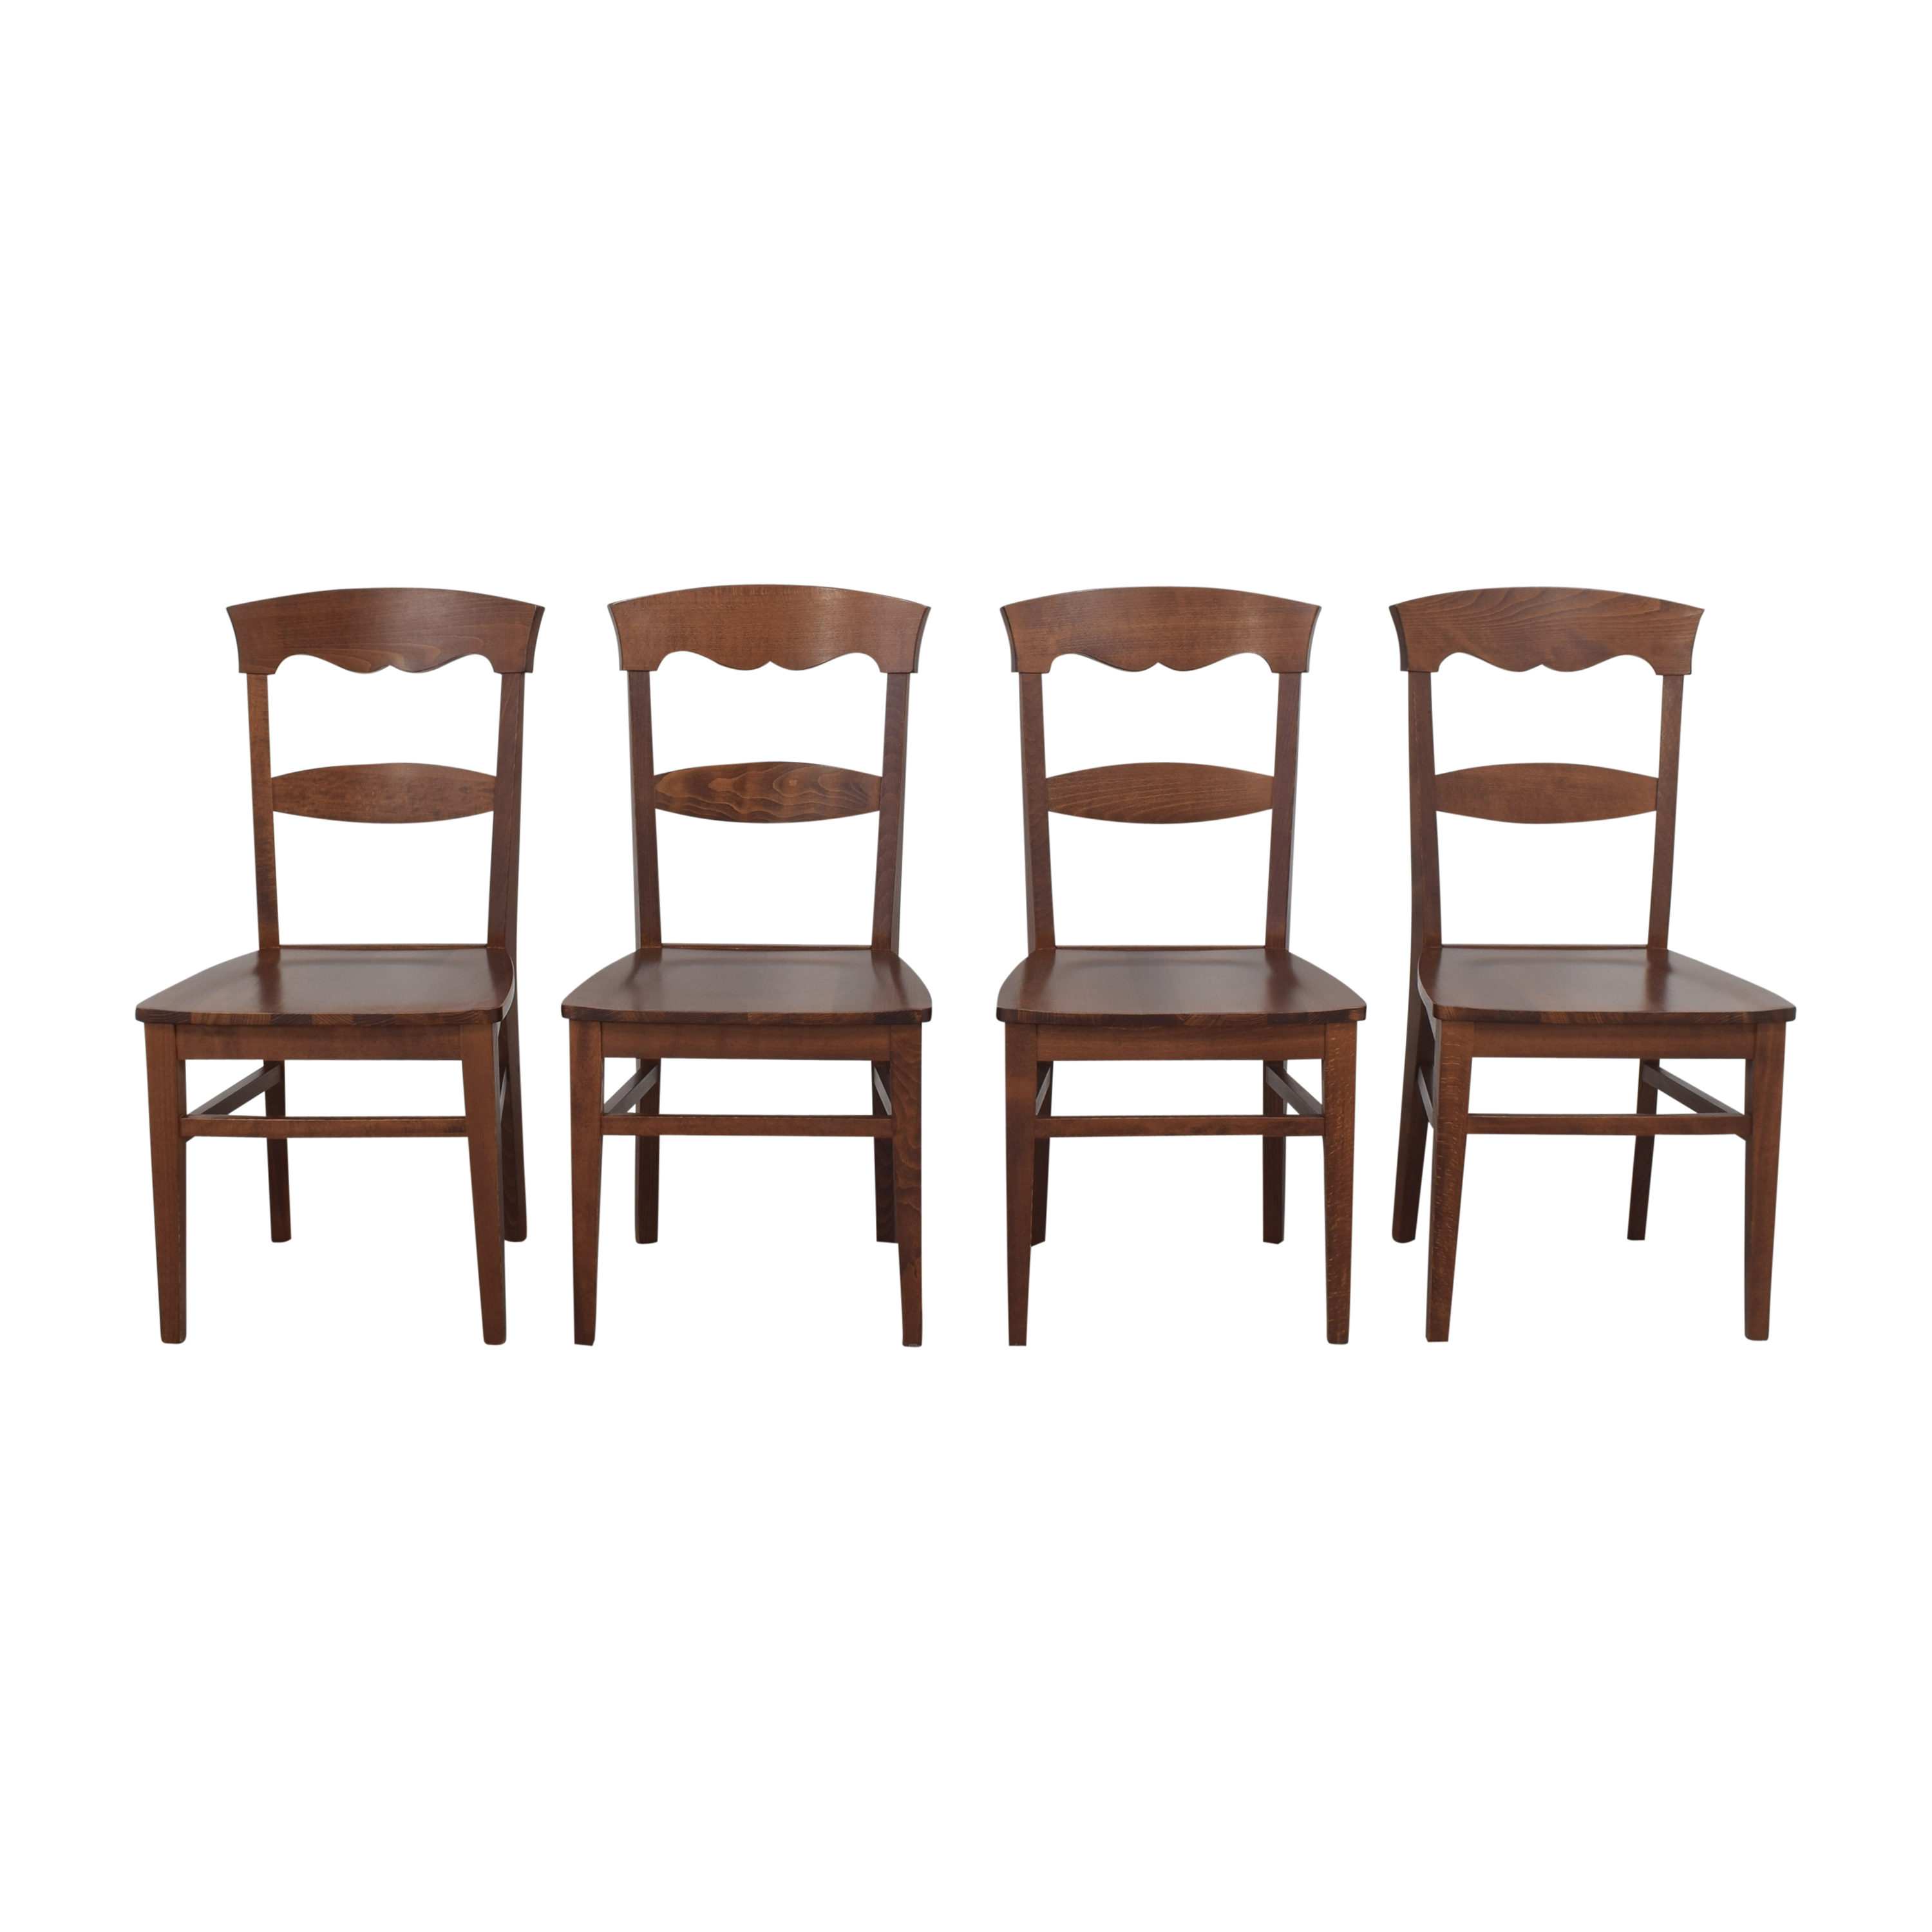 buy Pottery Barn Pottery Barn Dining Chairs online